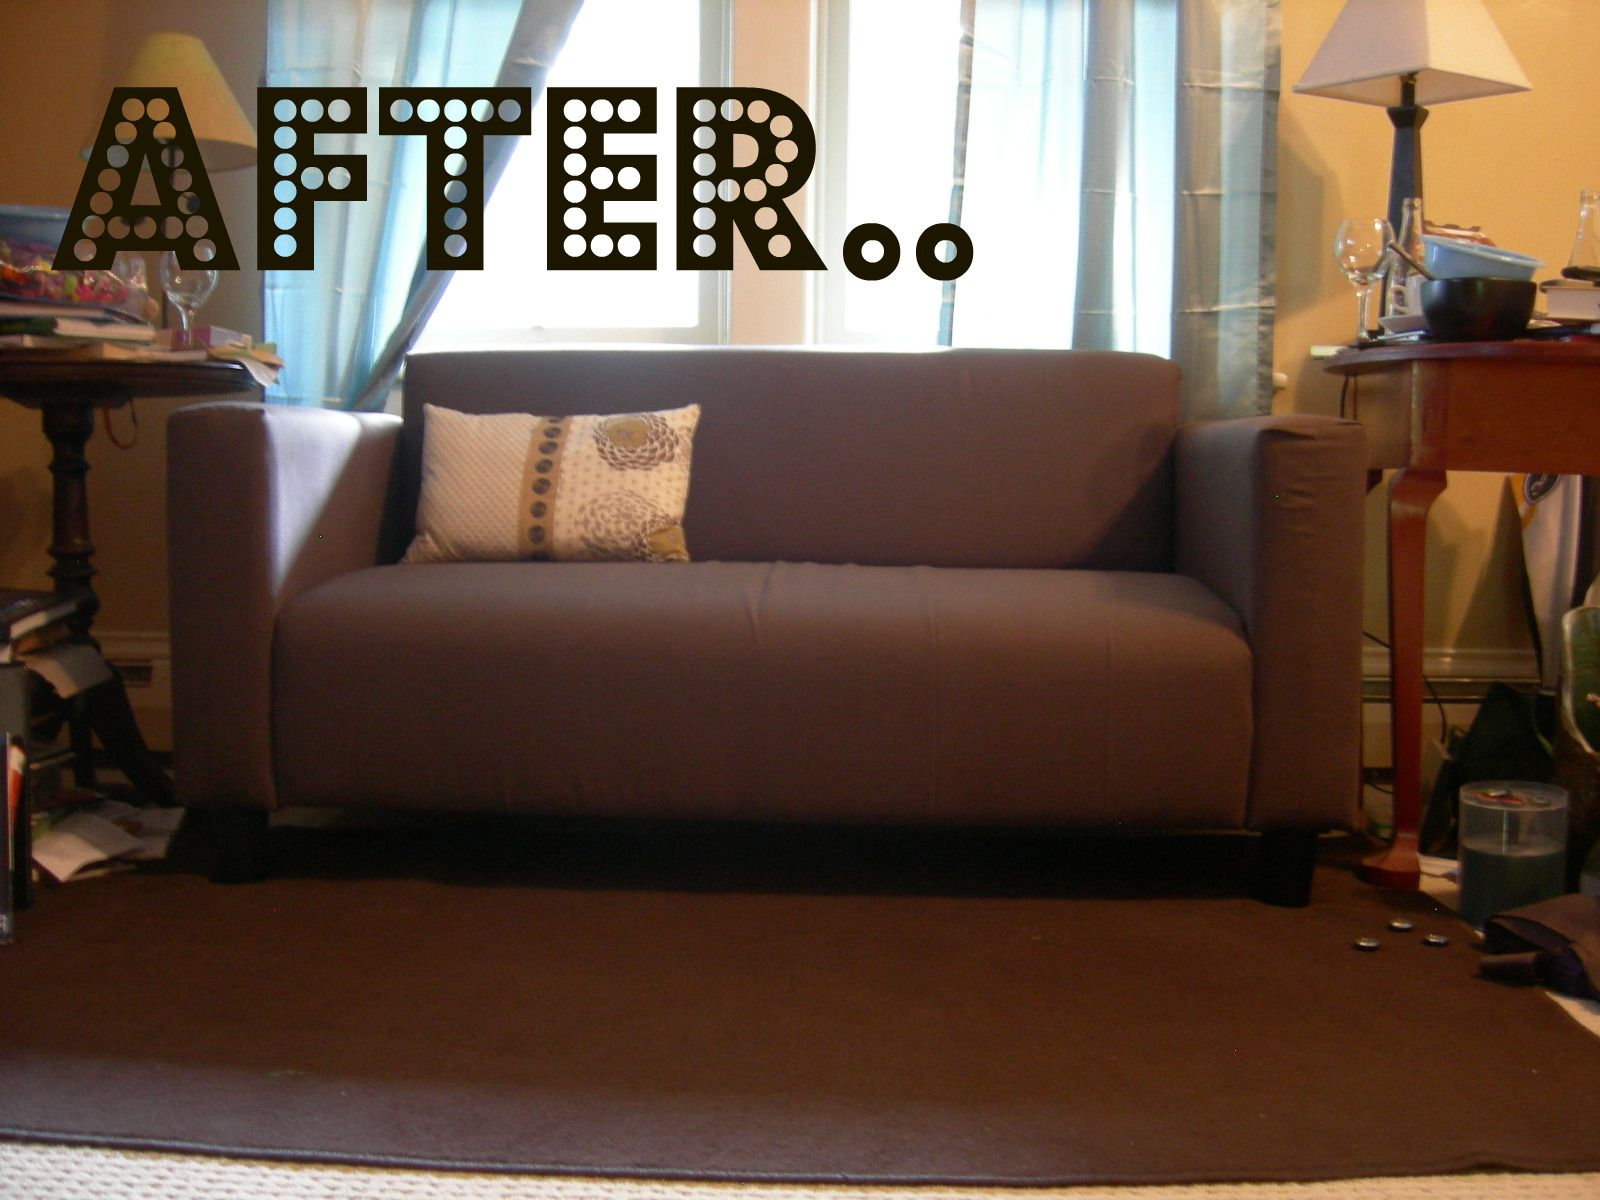 cover my furniture. It Just Occurred To Me That I Can Cover My Stained Klobo Loveseat In New Fabric Furniture D